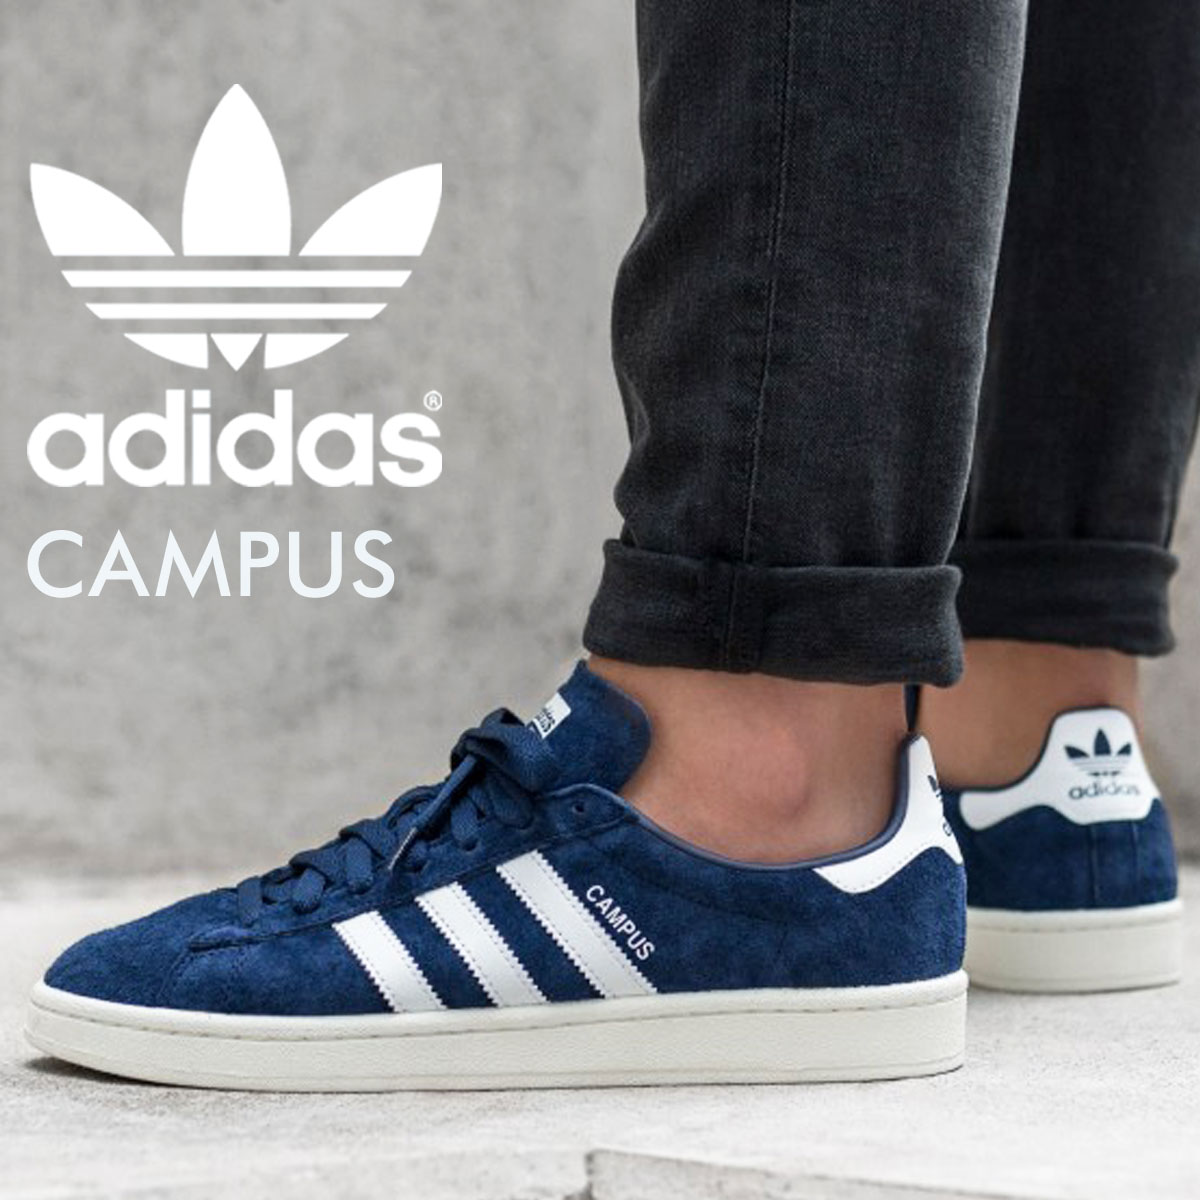 Adidas campus adidas originals sneakers CAMPUS men gap Dis BZ0086 shoes  blue 913 Shinnyu load 179